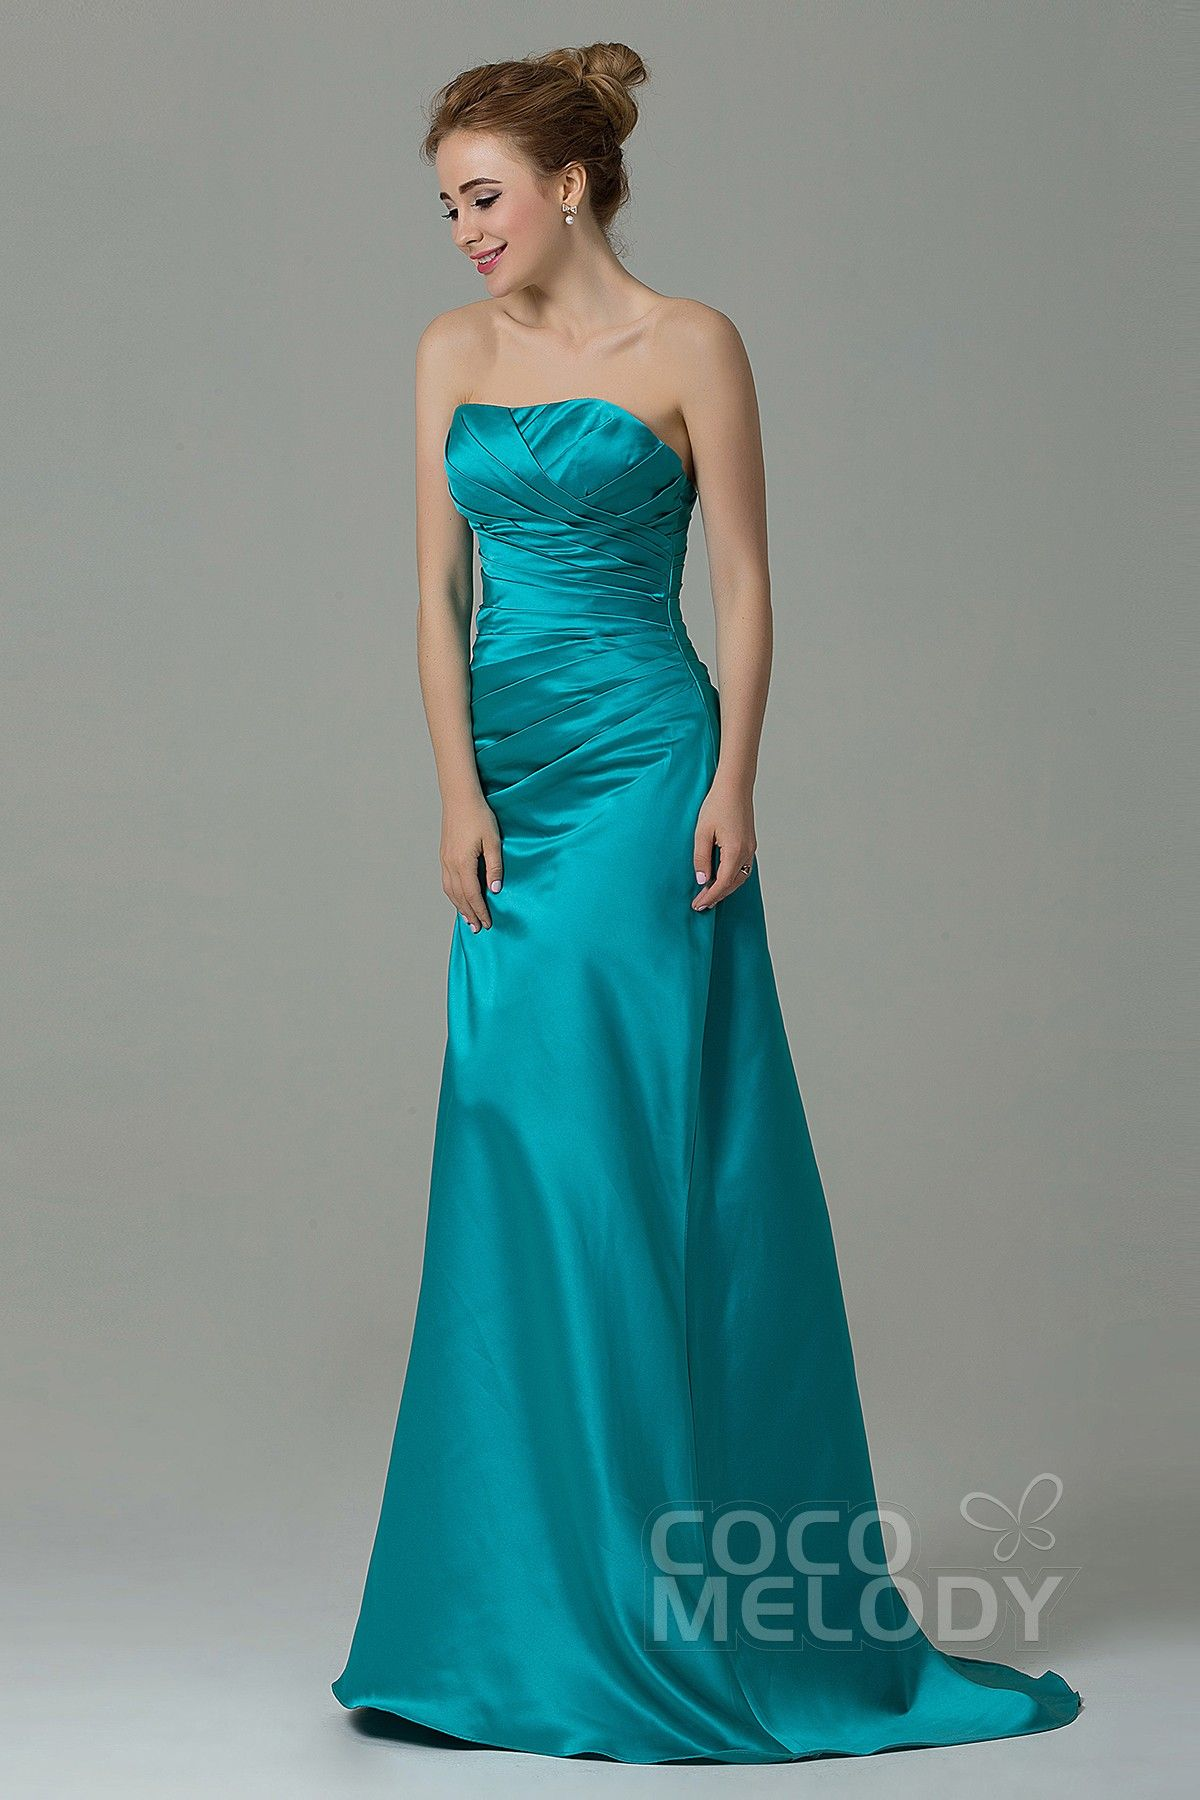 Queenly sheath column strapless natural floor length satin tiffany queenly sheath column strapless natural floor length satin tiffany blue sleeveless lace up corset bridesmaid dress with ruched ombrellifo Image collections